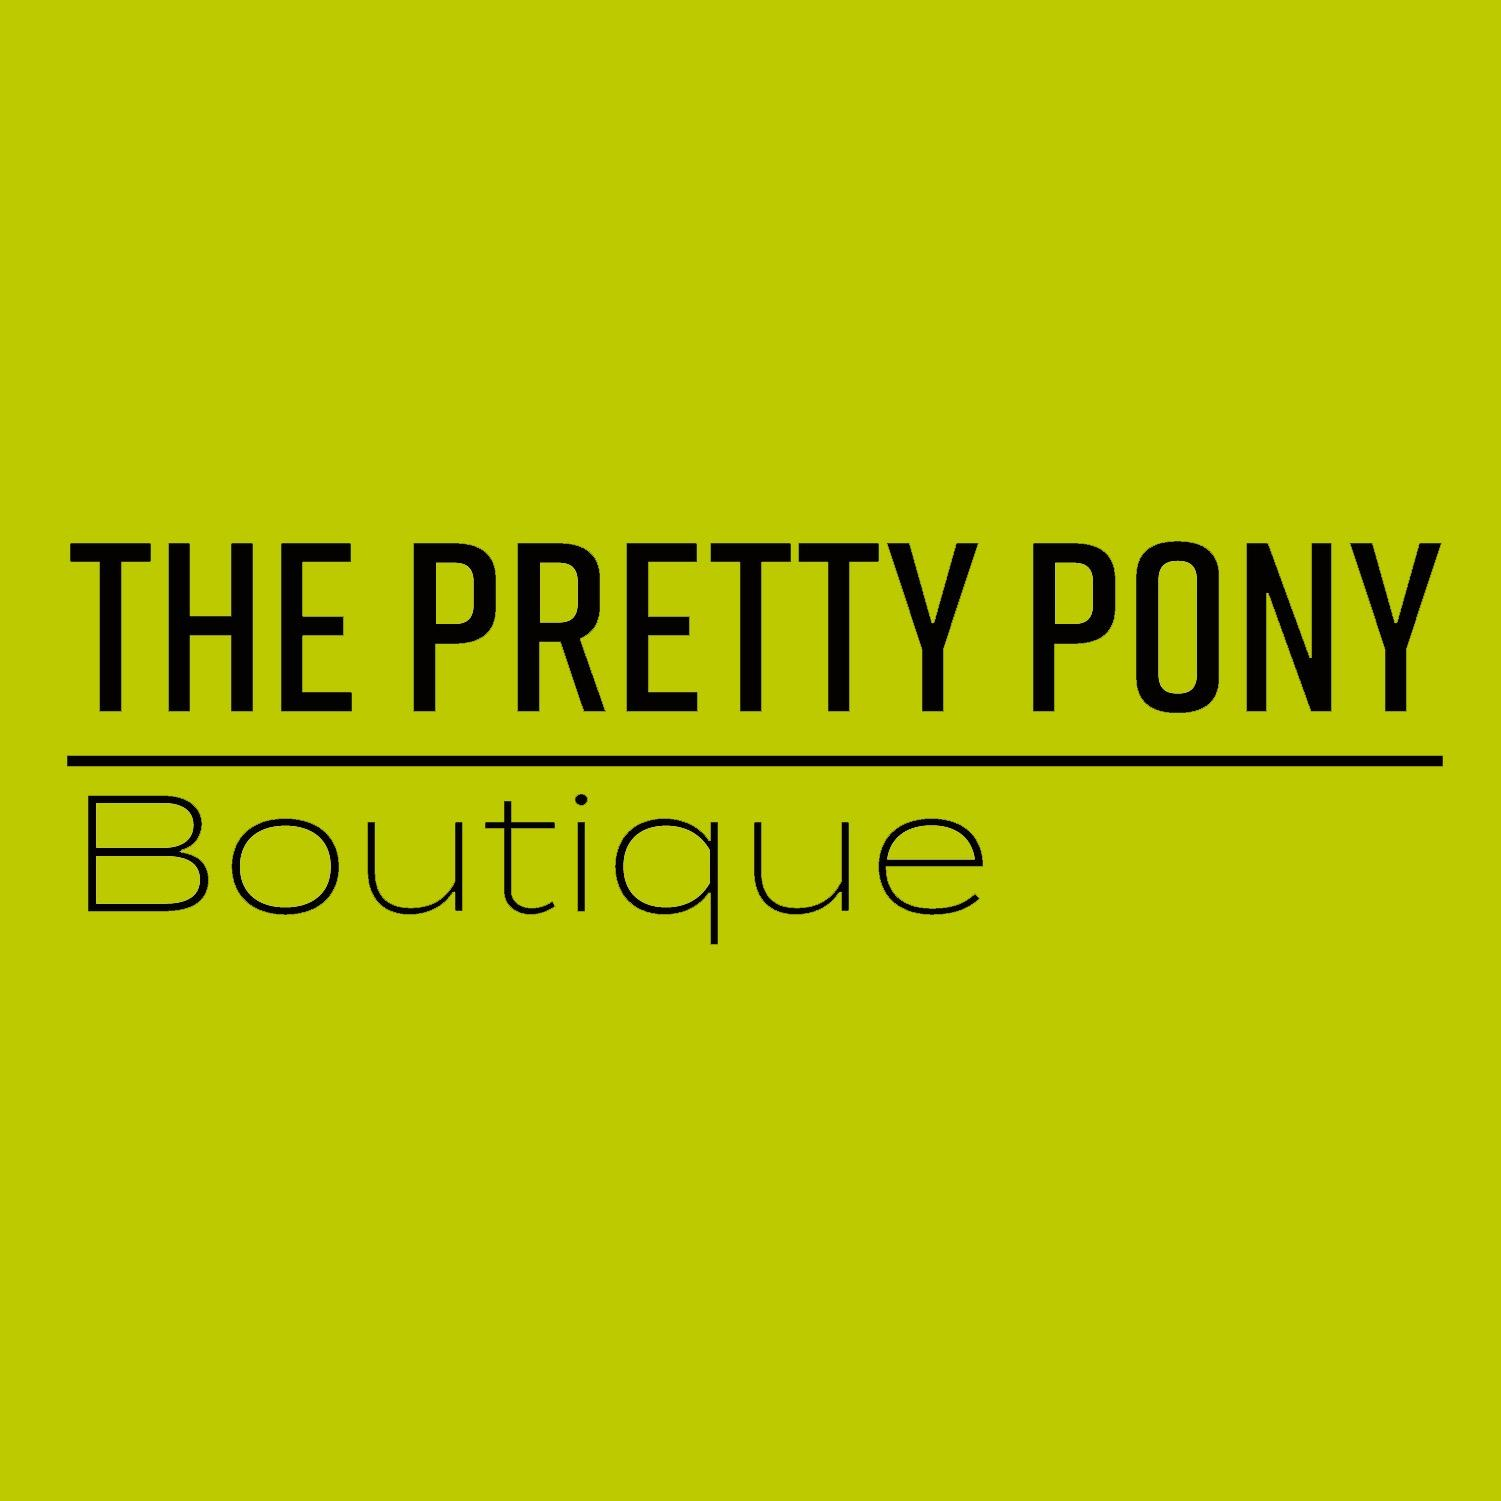 The Pretty Pony Boutique